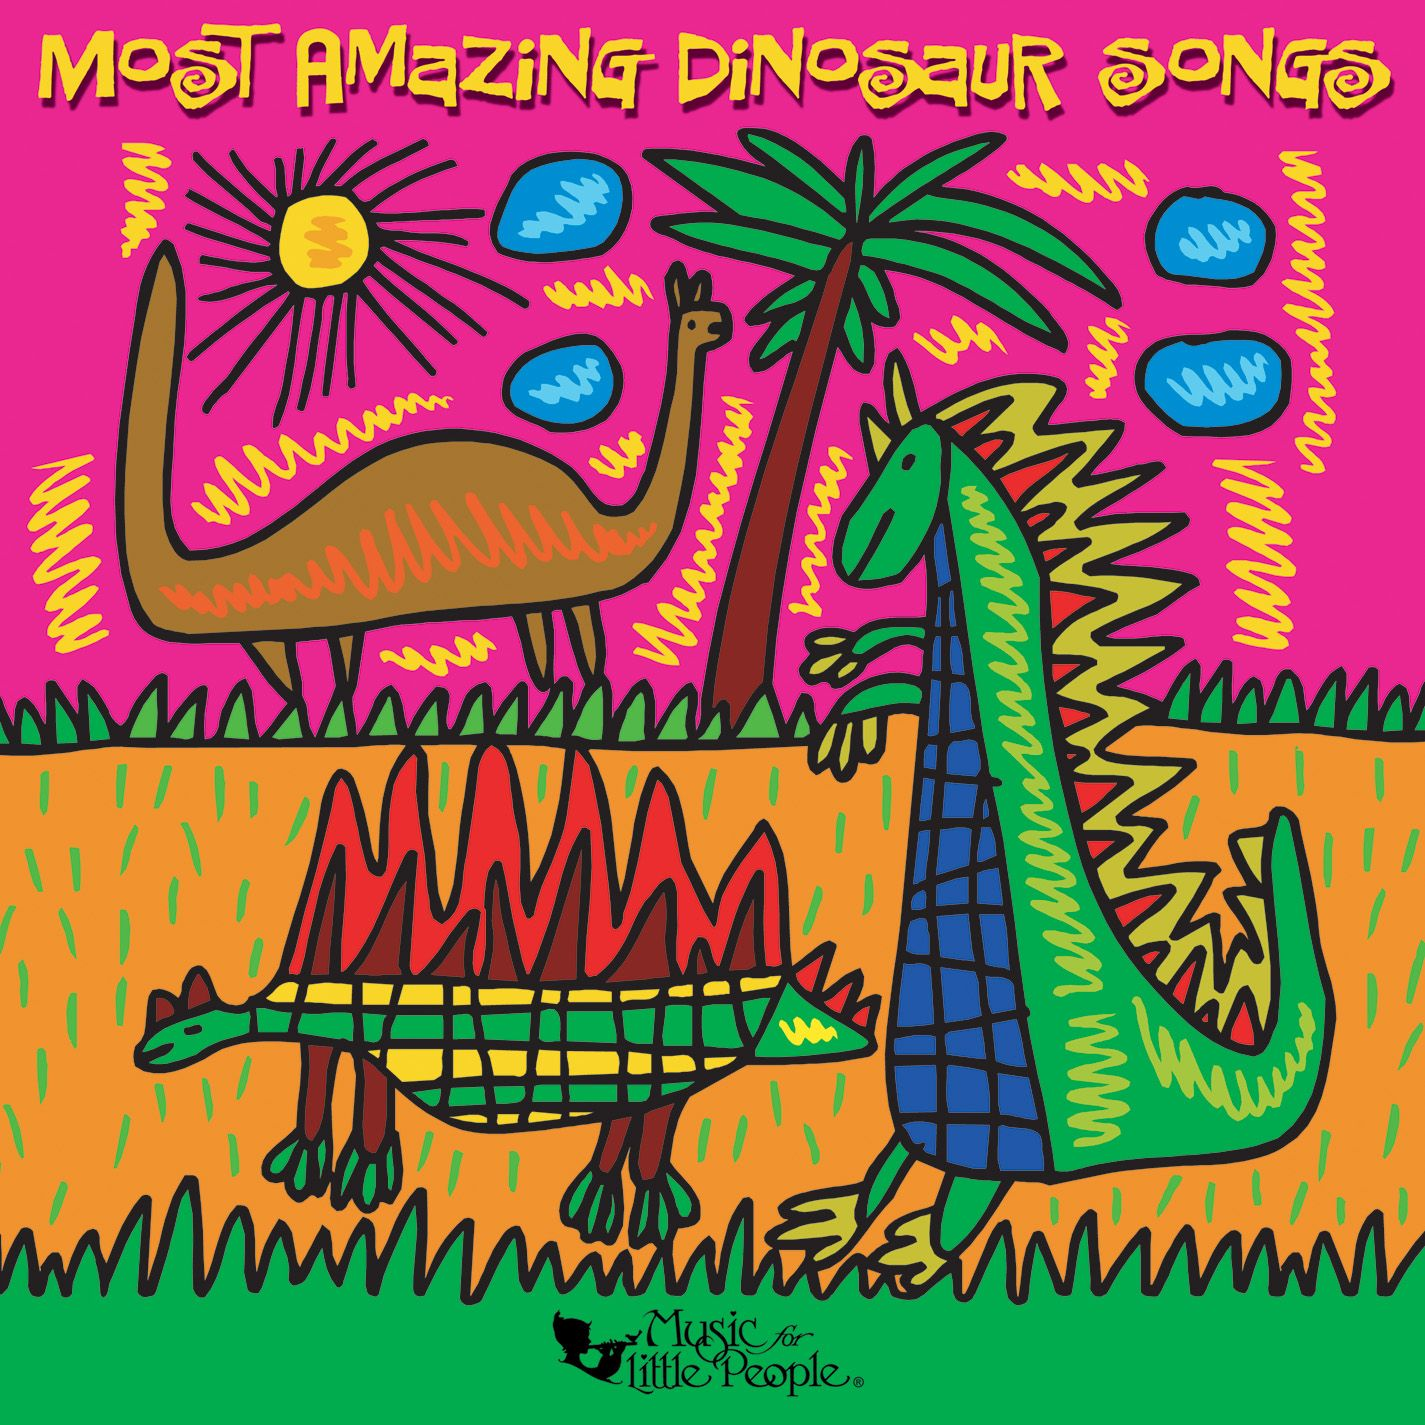 Are your kids too young for #JurassicWorld but caught up in the excitement? MOST AMAZING DINOSAUR SONGS (Music For Little People) is the perfect CD!  Silly songs, scary songs and familiar childhood sing-alongs make up this delightful celebration of songs all about dinosaurs, ideal for ages 4-7. 14 songs plus dinosaur related dialogue and trivia. Parents' Choice Recommended  http://amzn.com/B00025ETTG